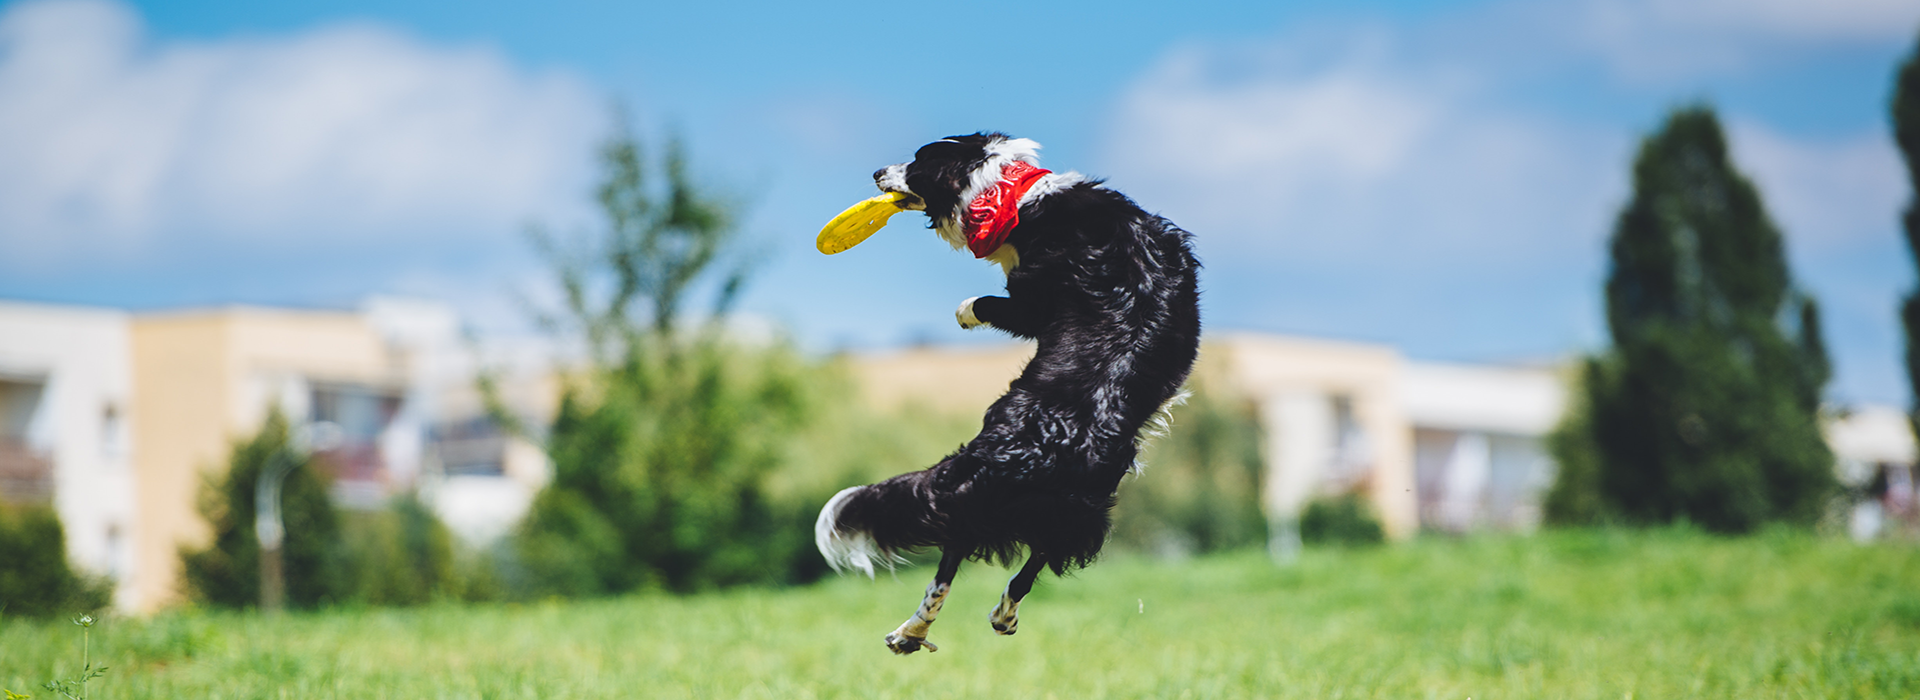 a dog jumping into the air to catch a frisbee